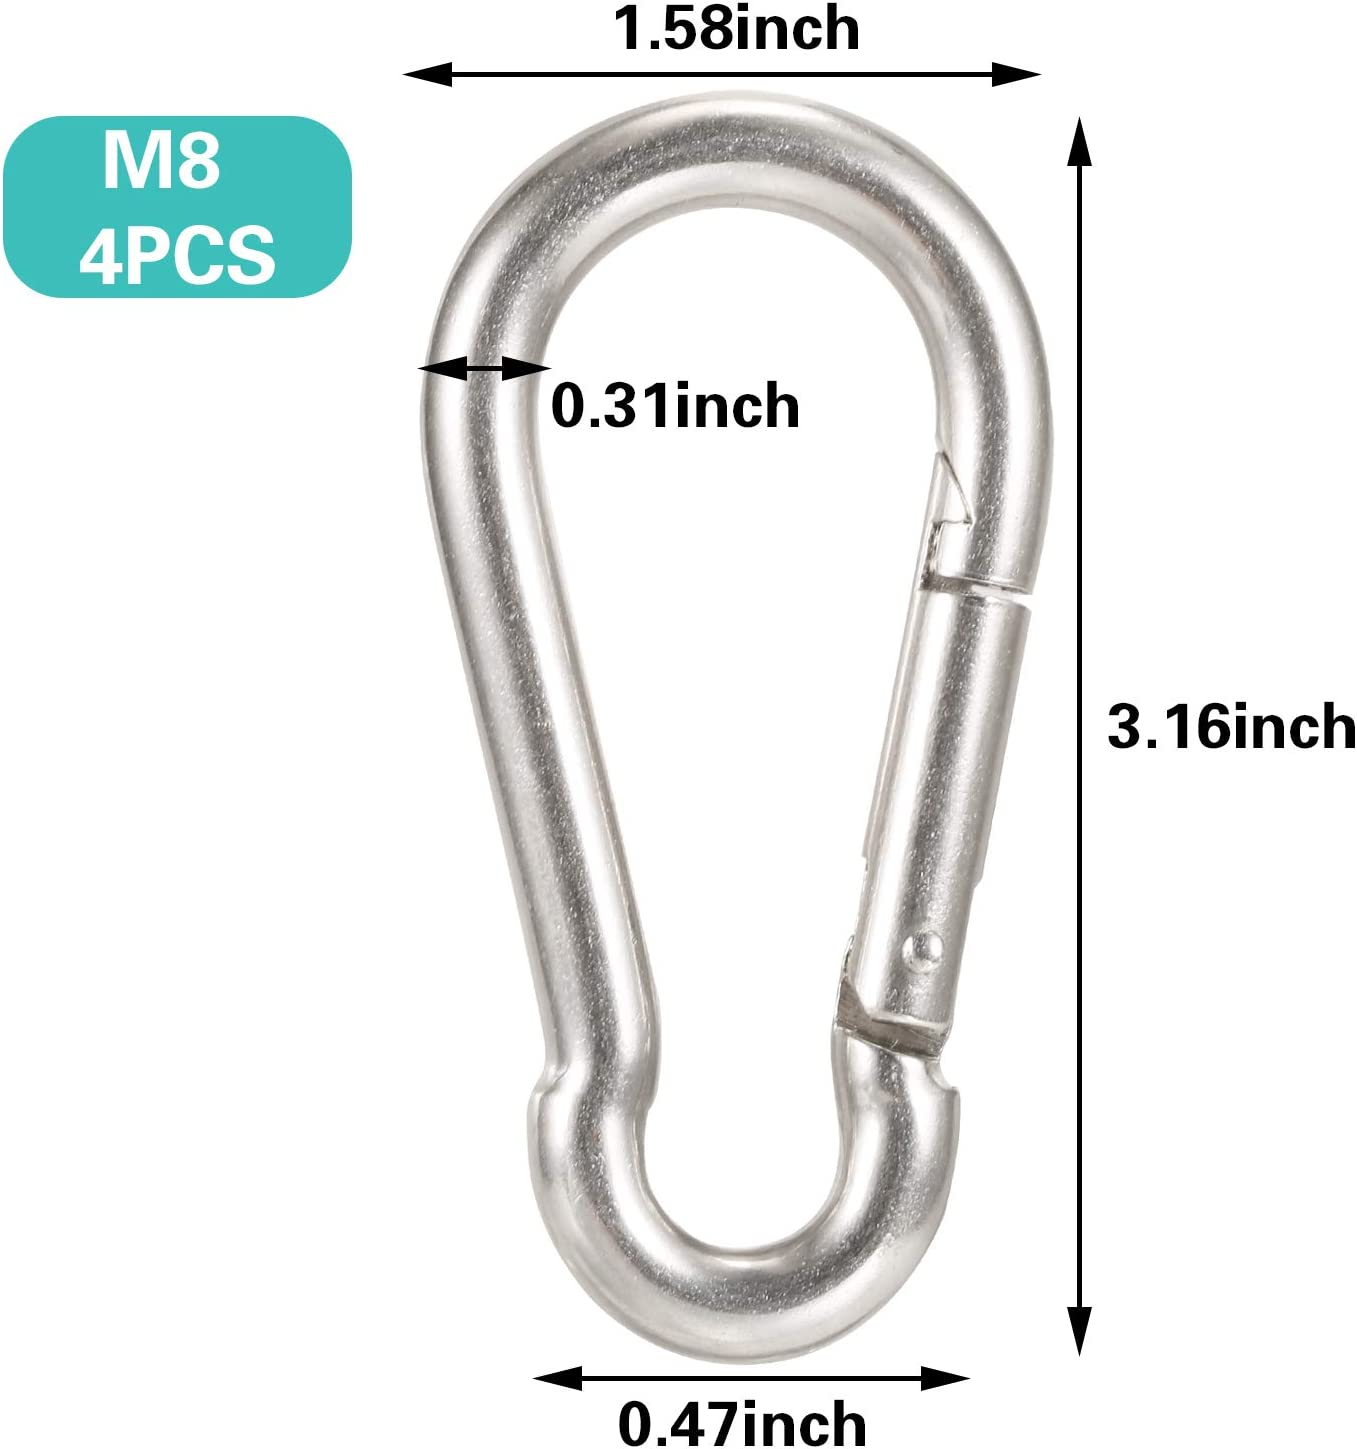 AOOHOOA Spring Snap Hook Carabiner Clips Heavy Duty Stainless Steel D Ring Locking Carabiner for Dog Leash Outdoor Camping Swing Hammock Hiking